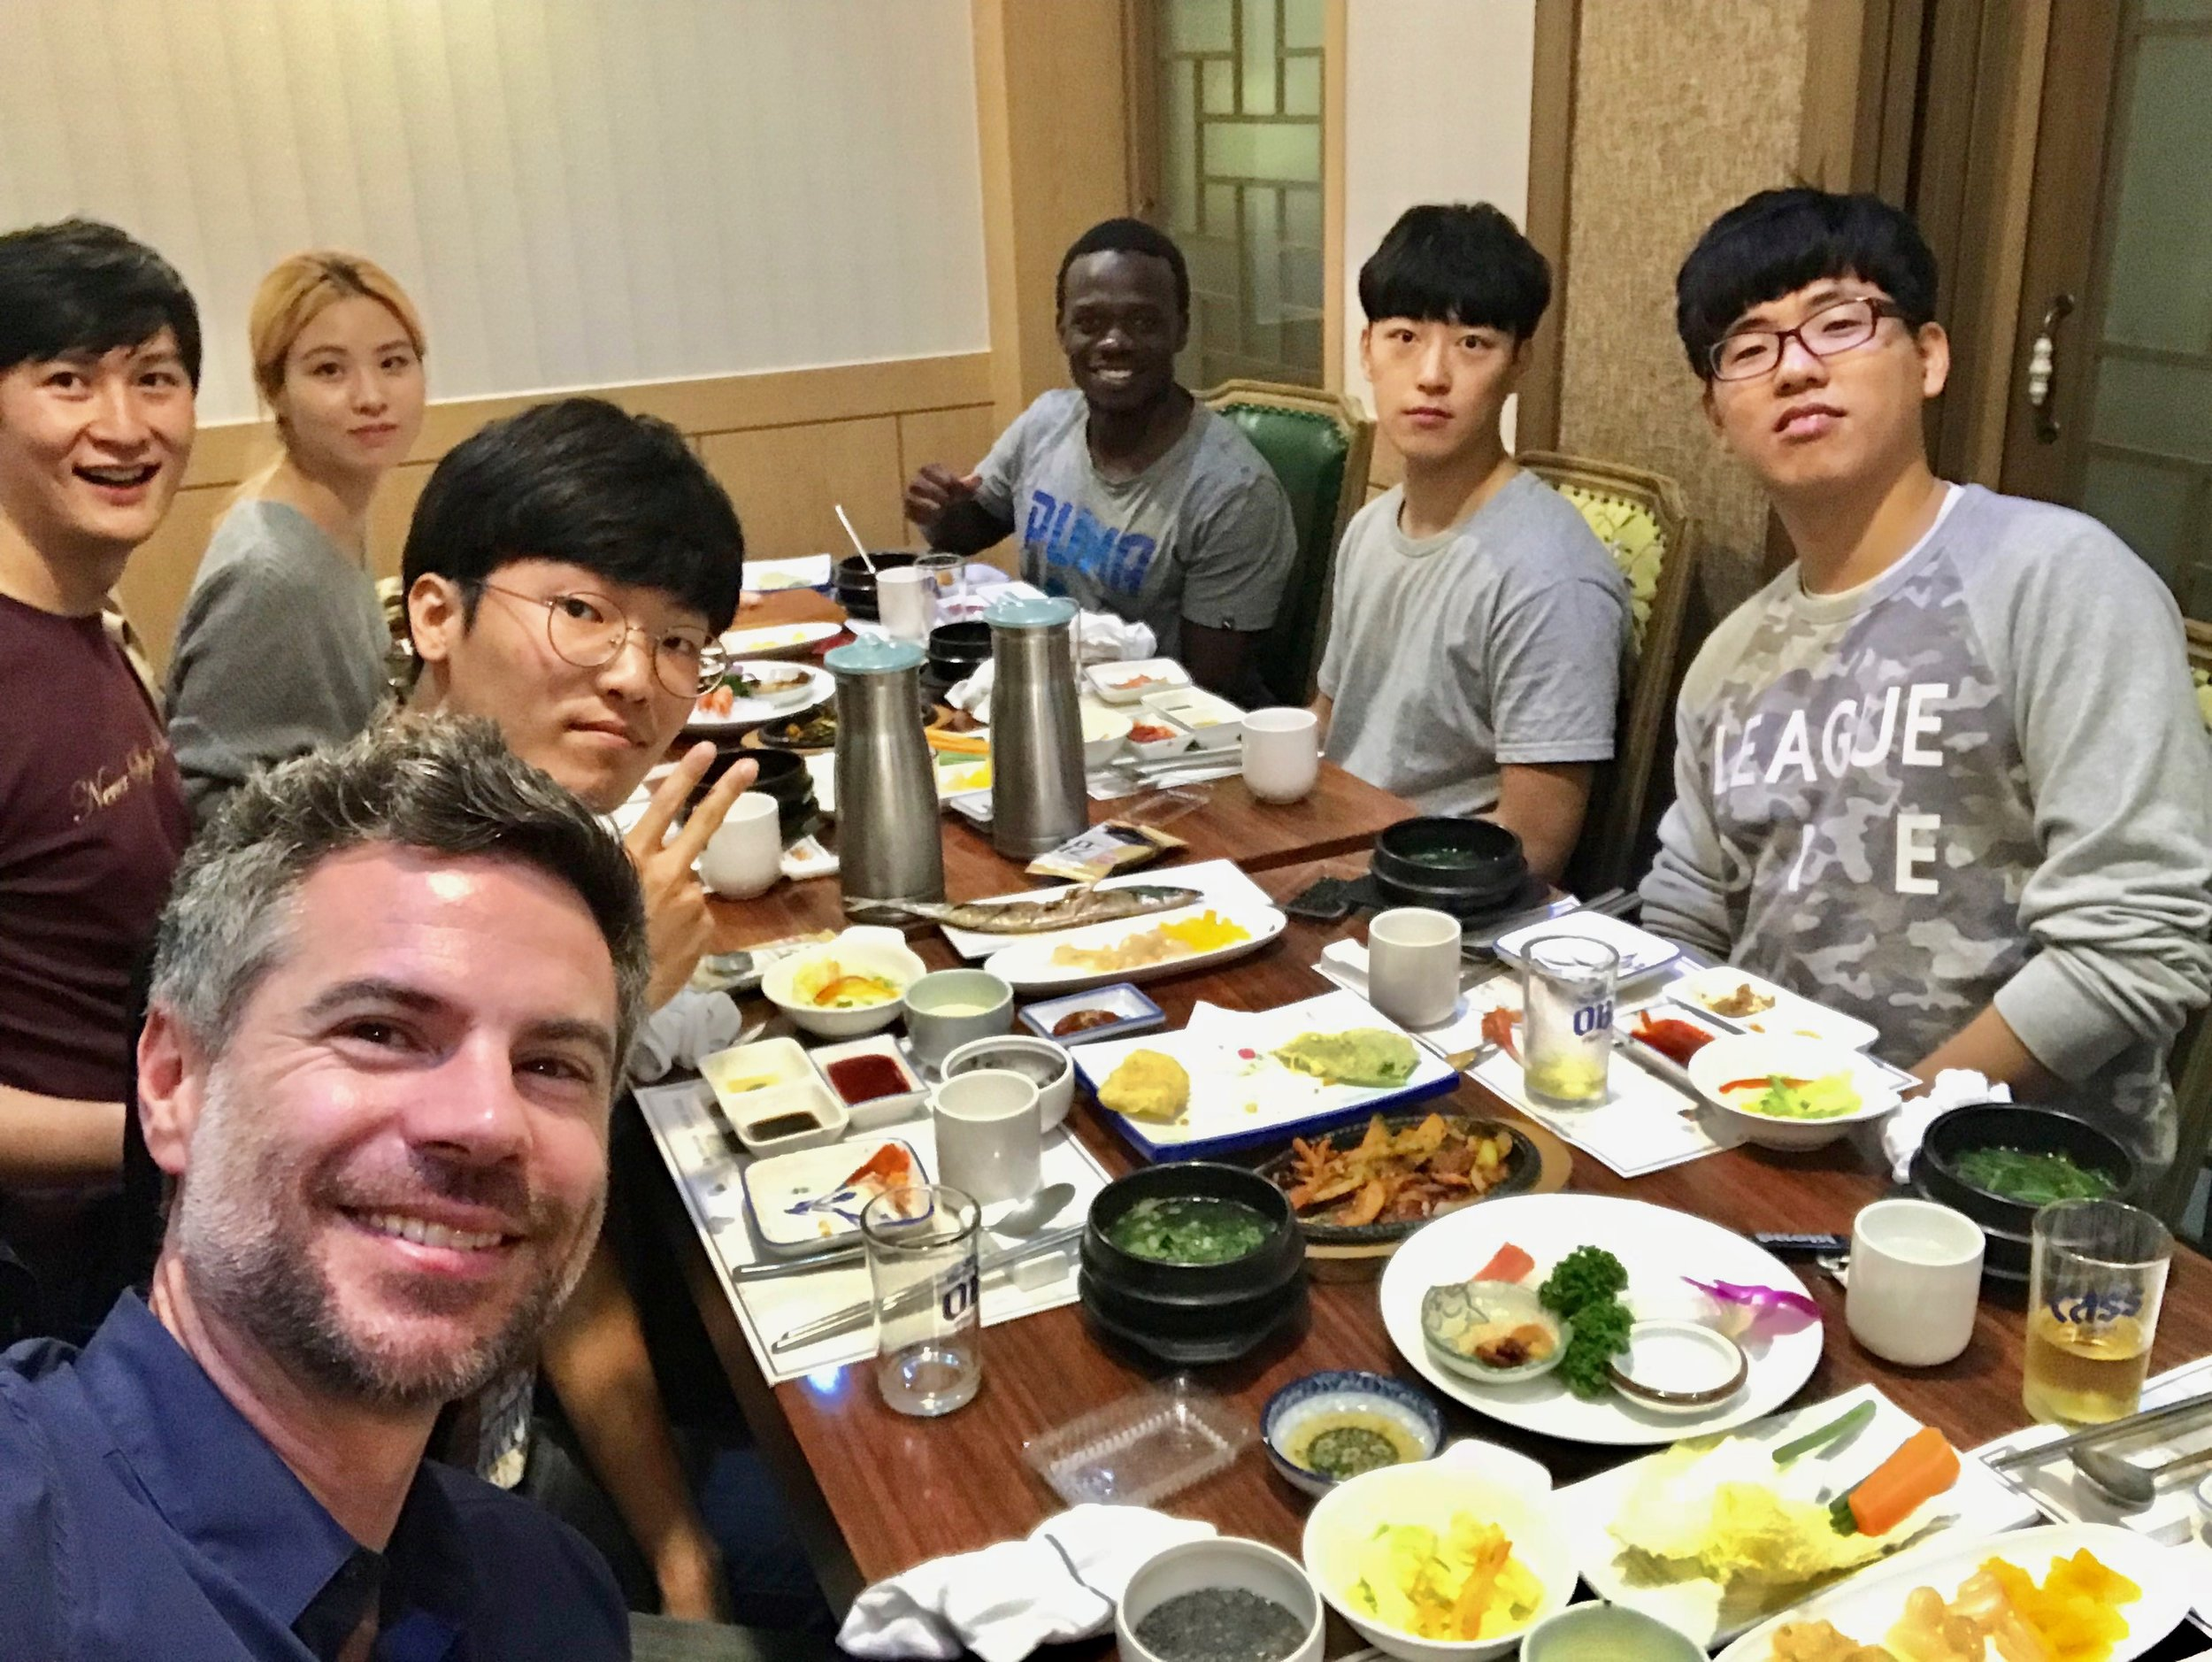 The author with nuclear engineering students at KAIST, South Korea's MIT